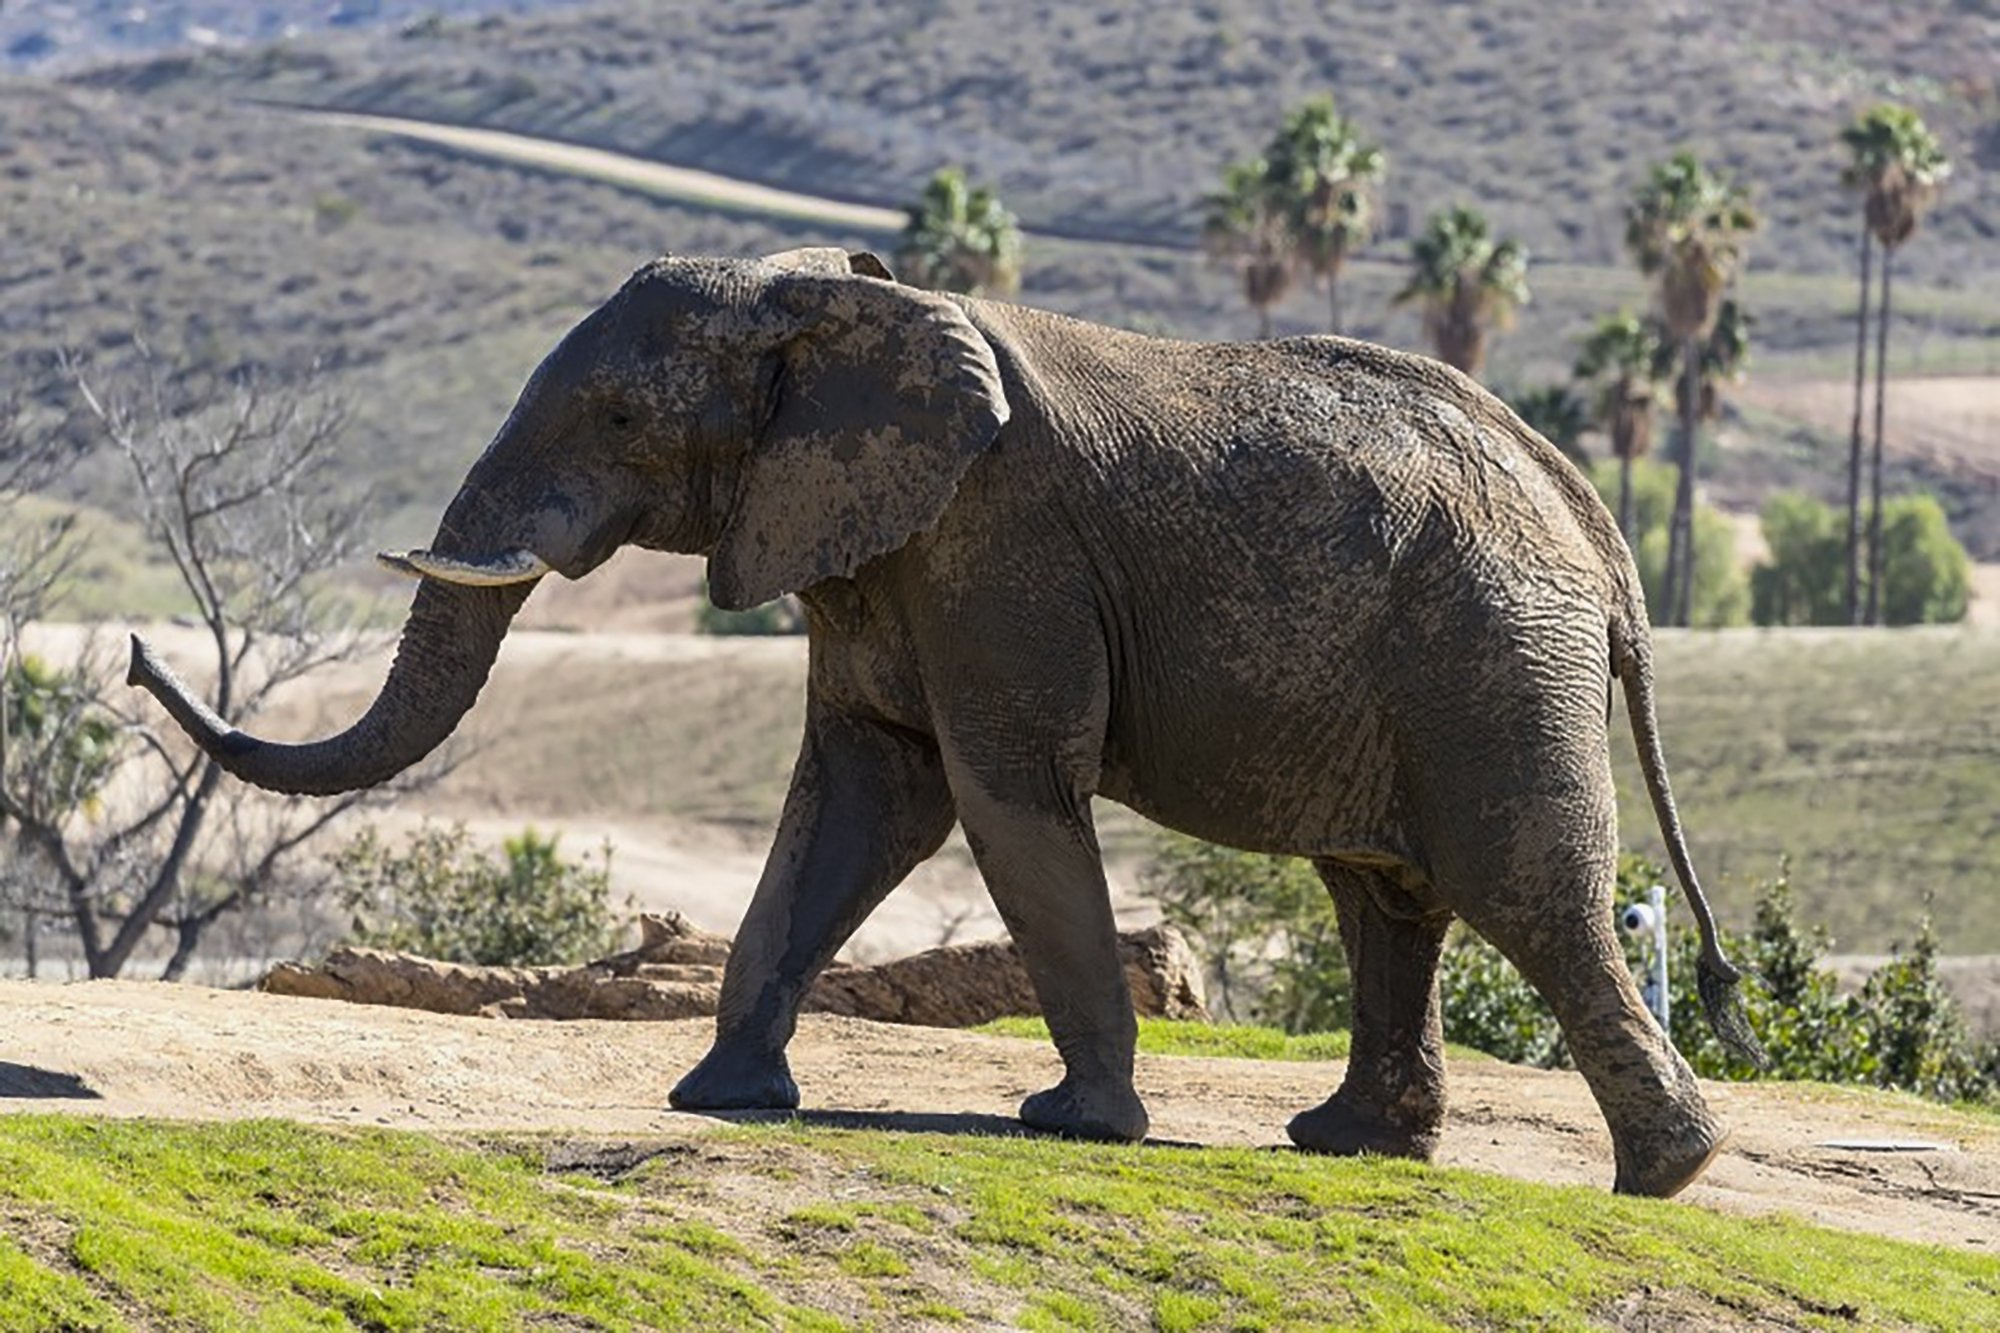 Msholo the African elephant leaves San Diego for Atlanta